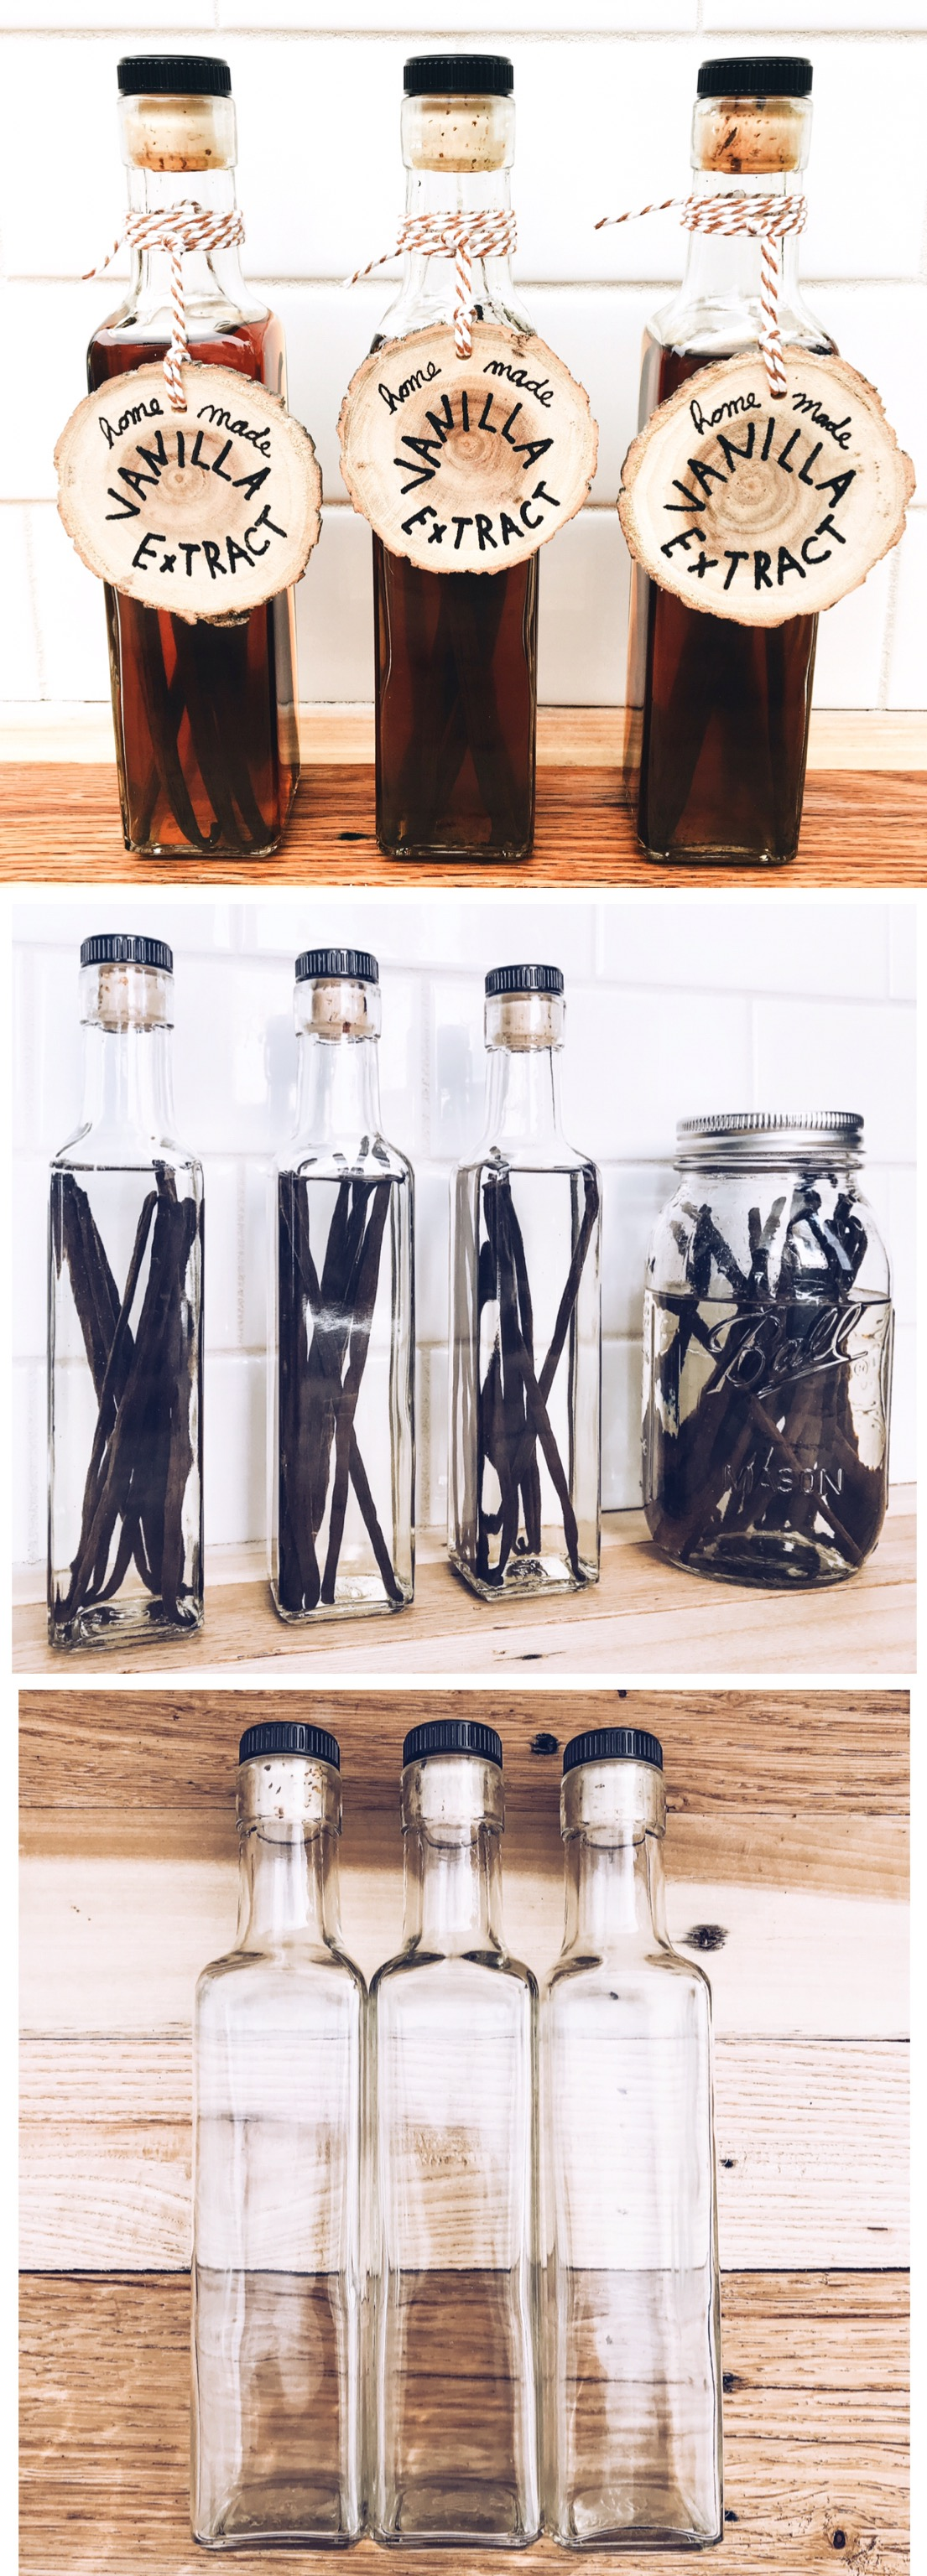 How To Make Your Own Vanilla Bean Extract - Homemade Gift Ideas For Bakers